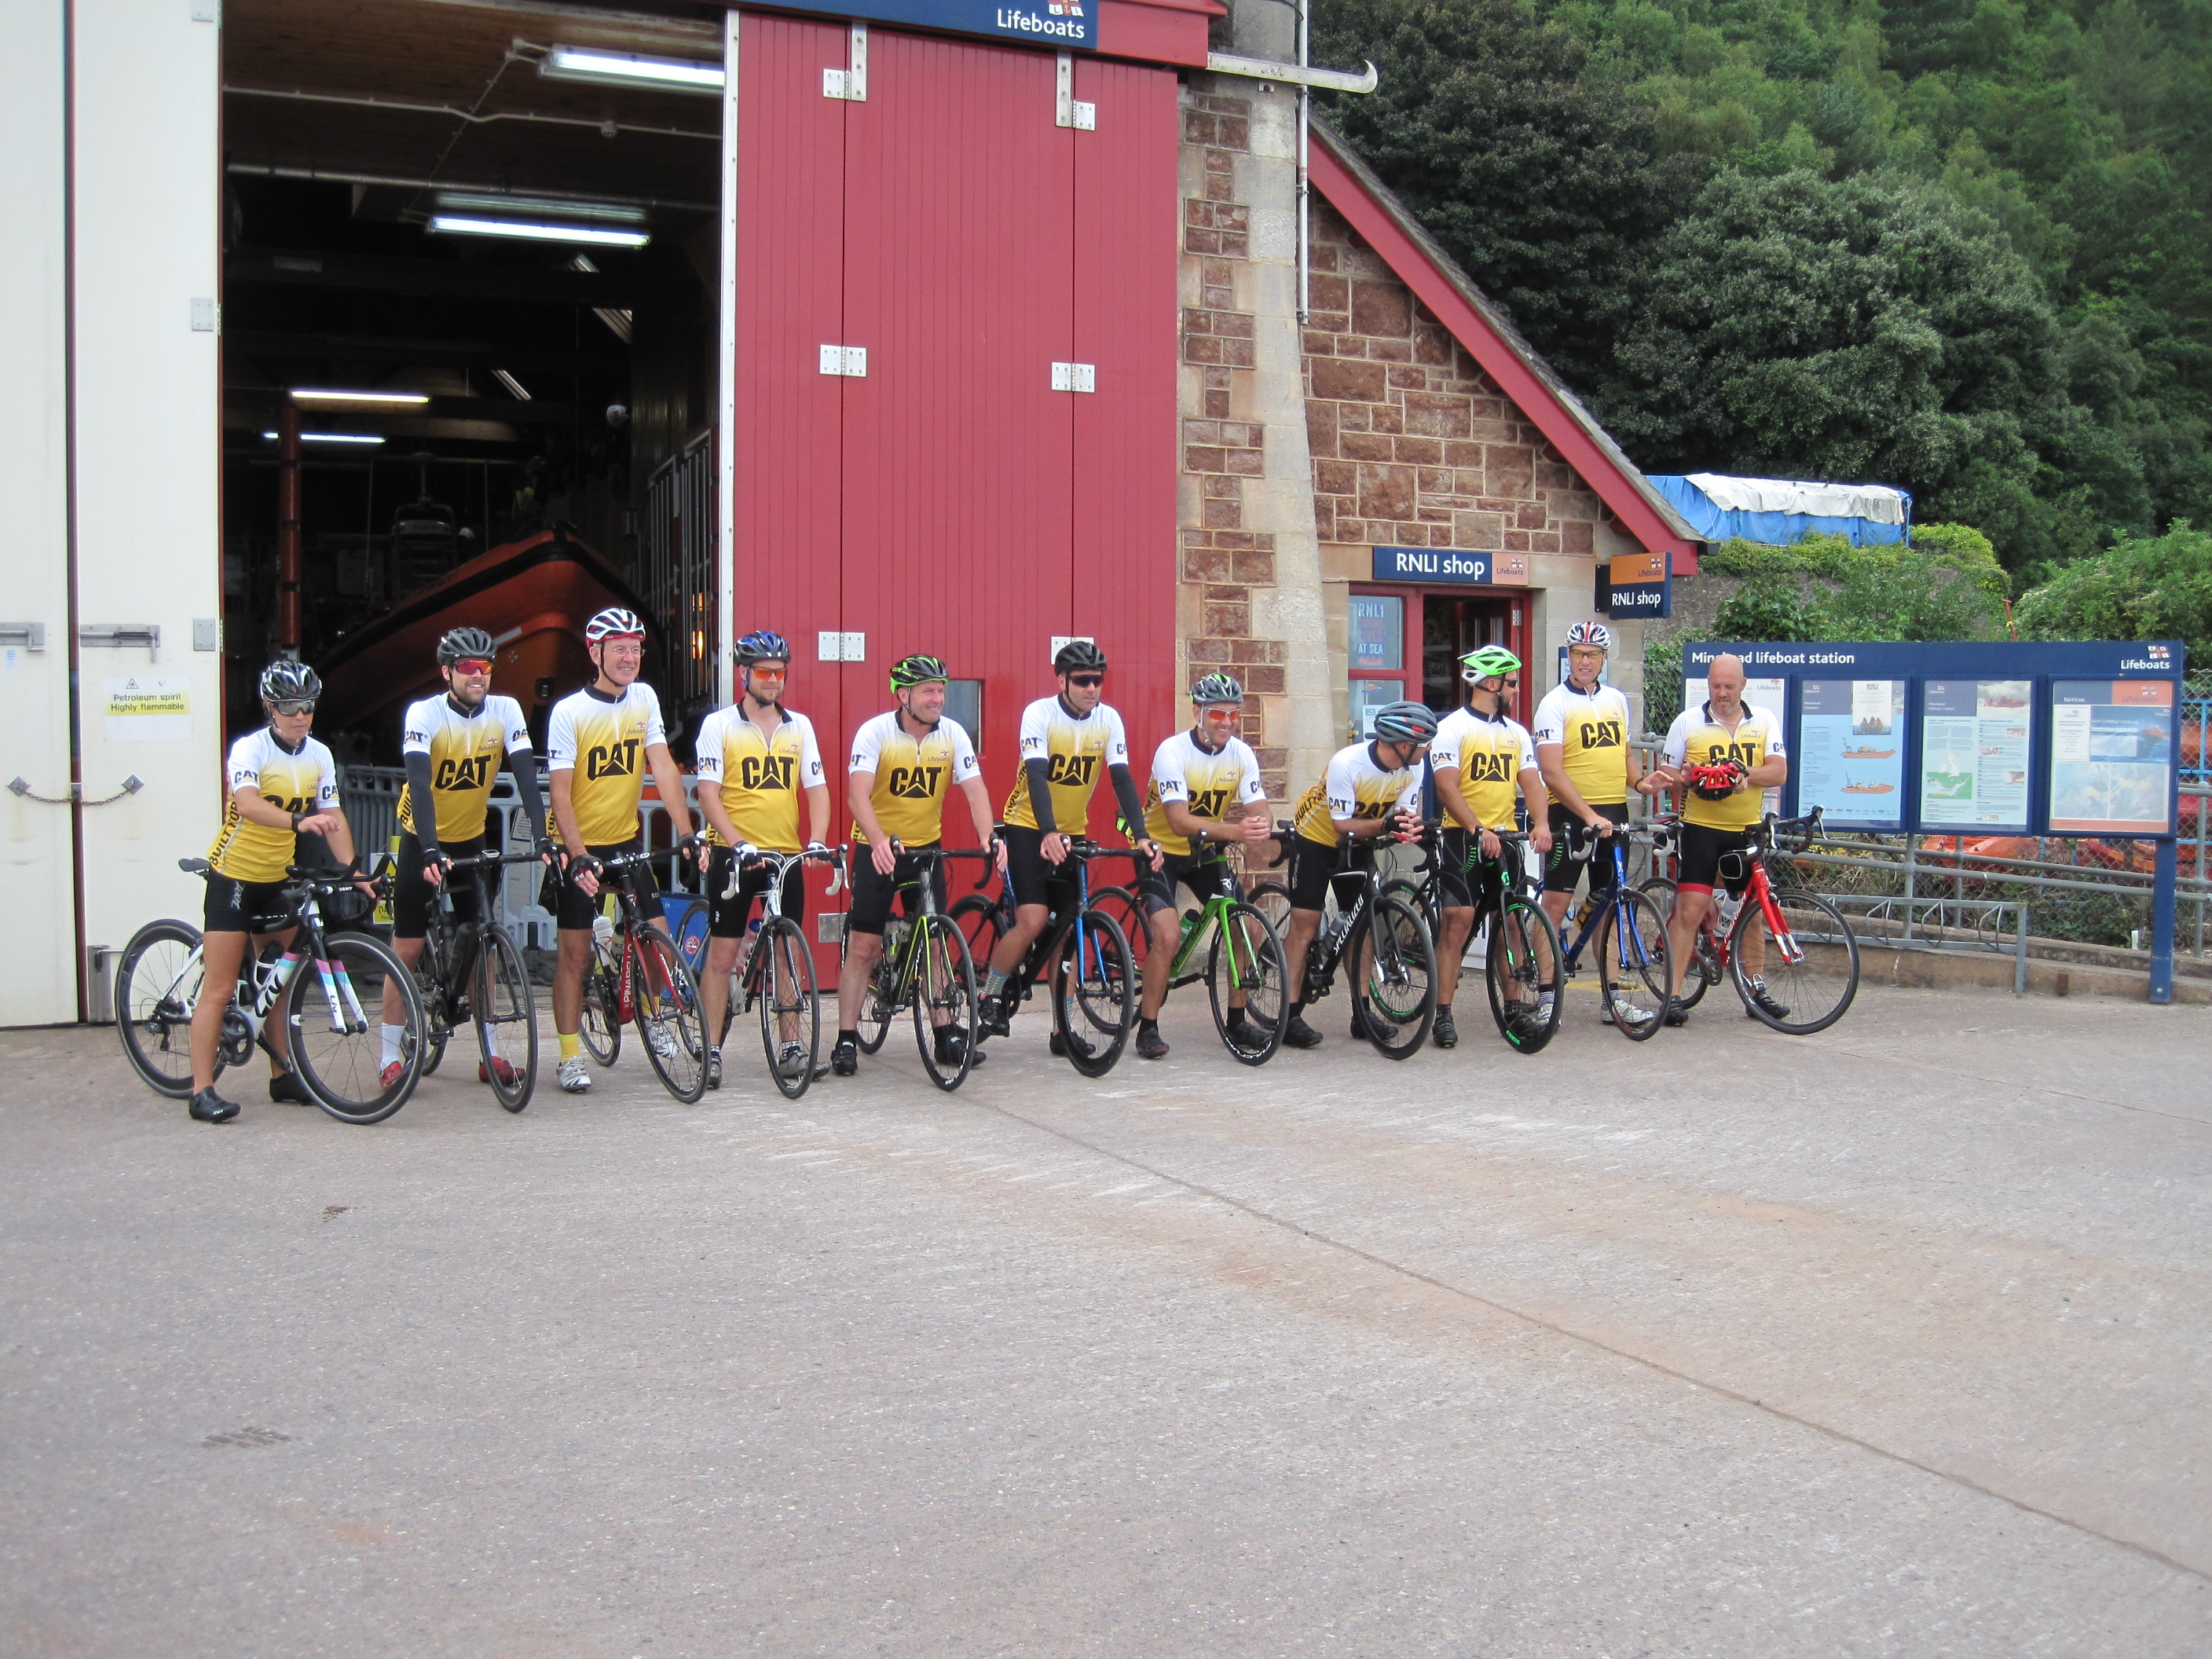 Appledore RNLI's Tour de Yellow Welly make it to Minehead Lifeboat Station